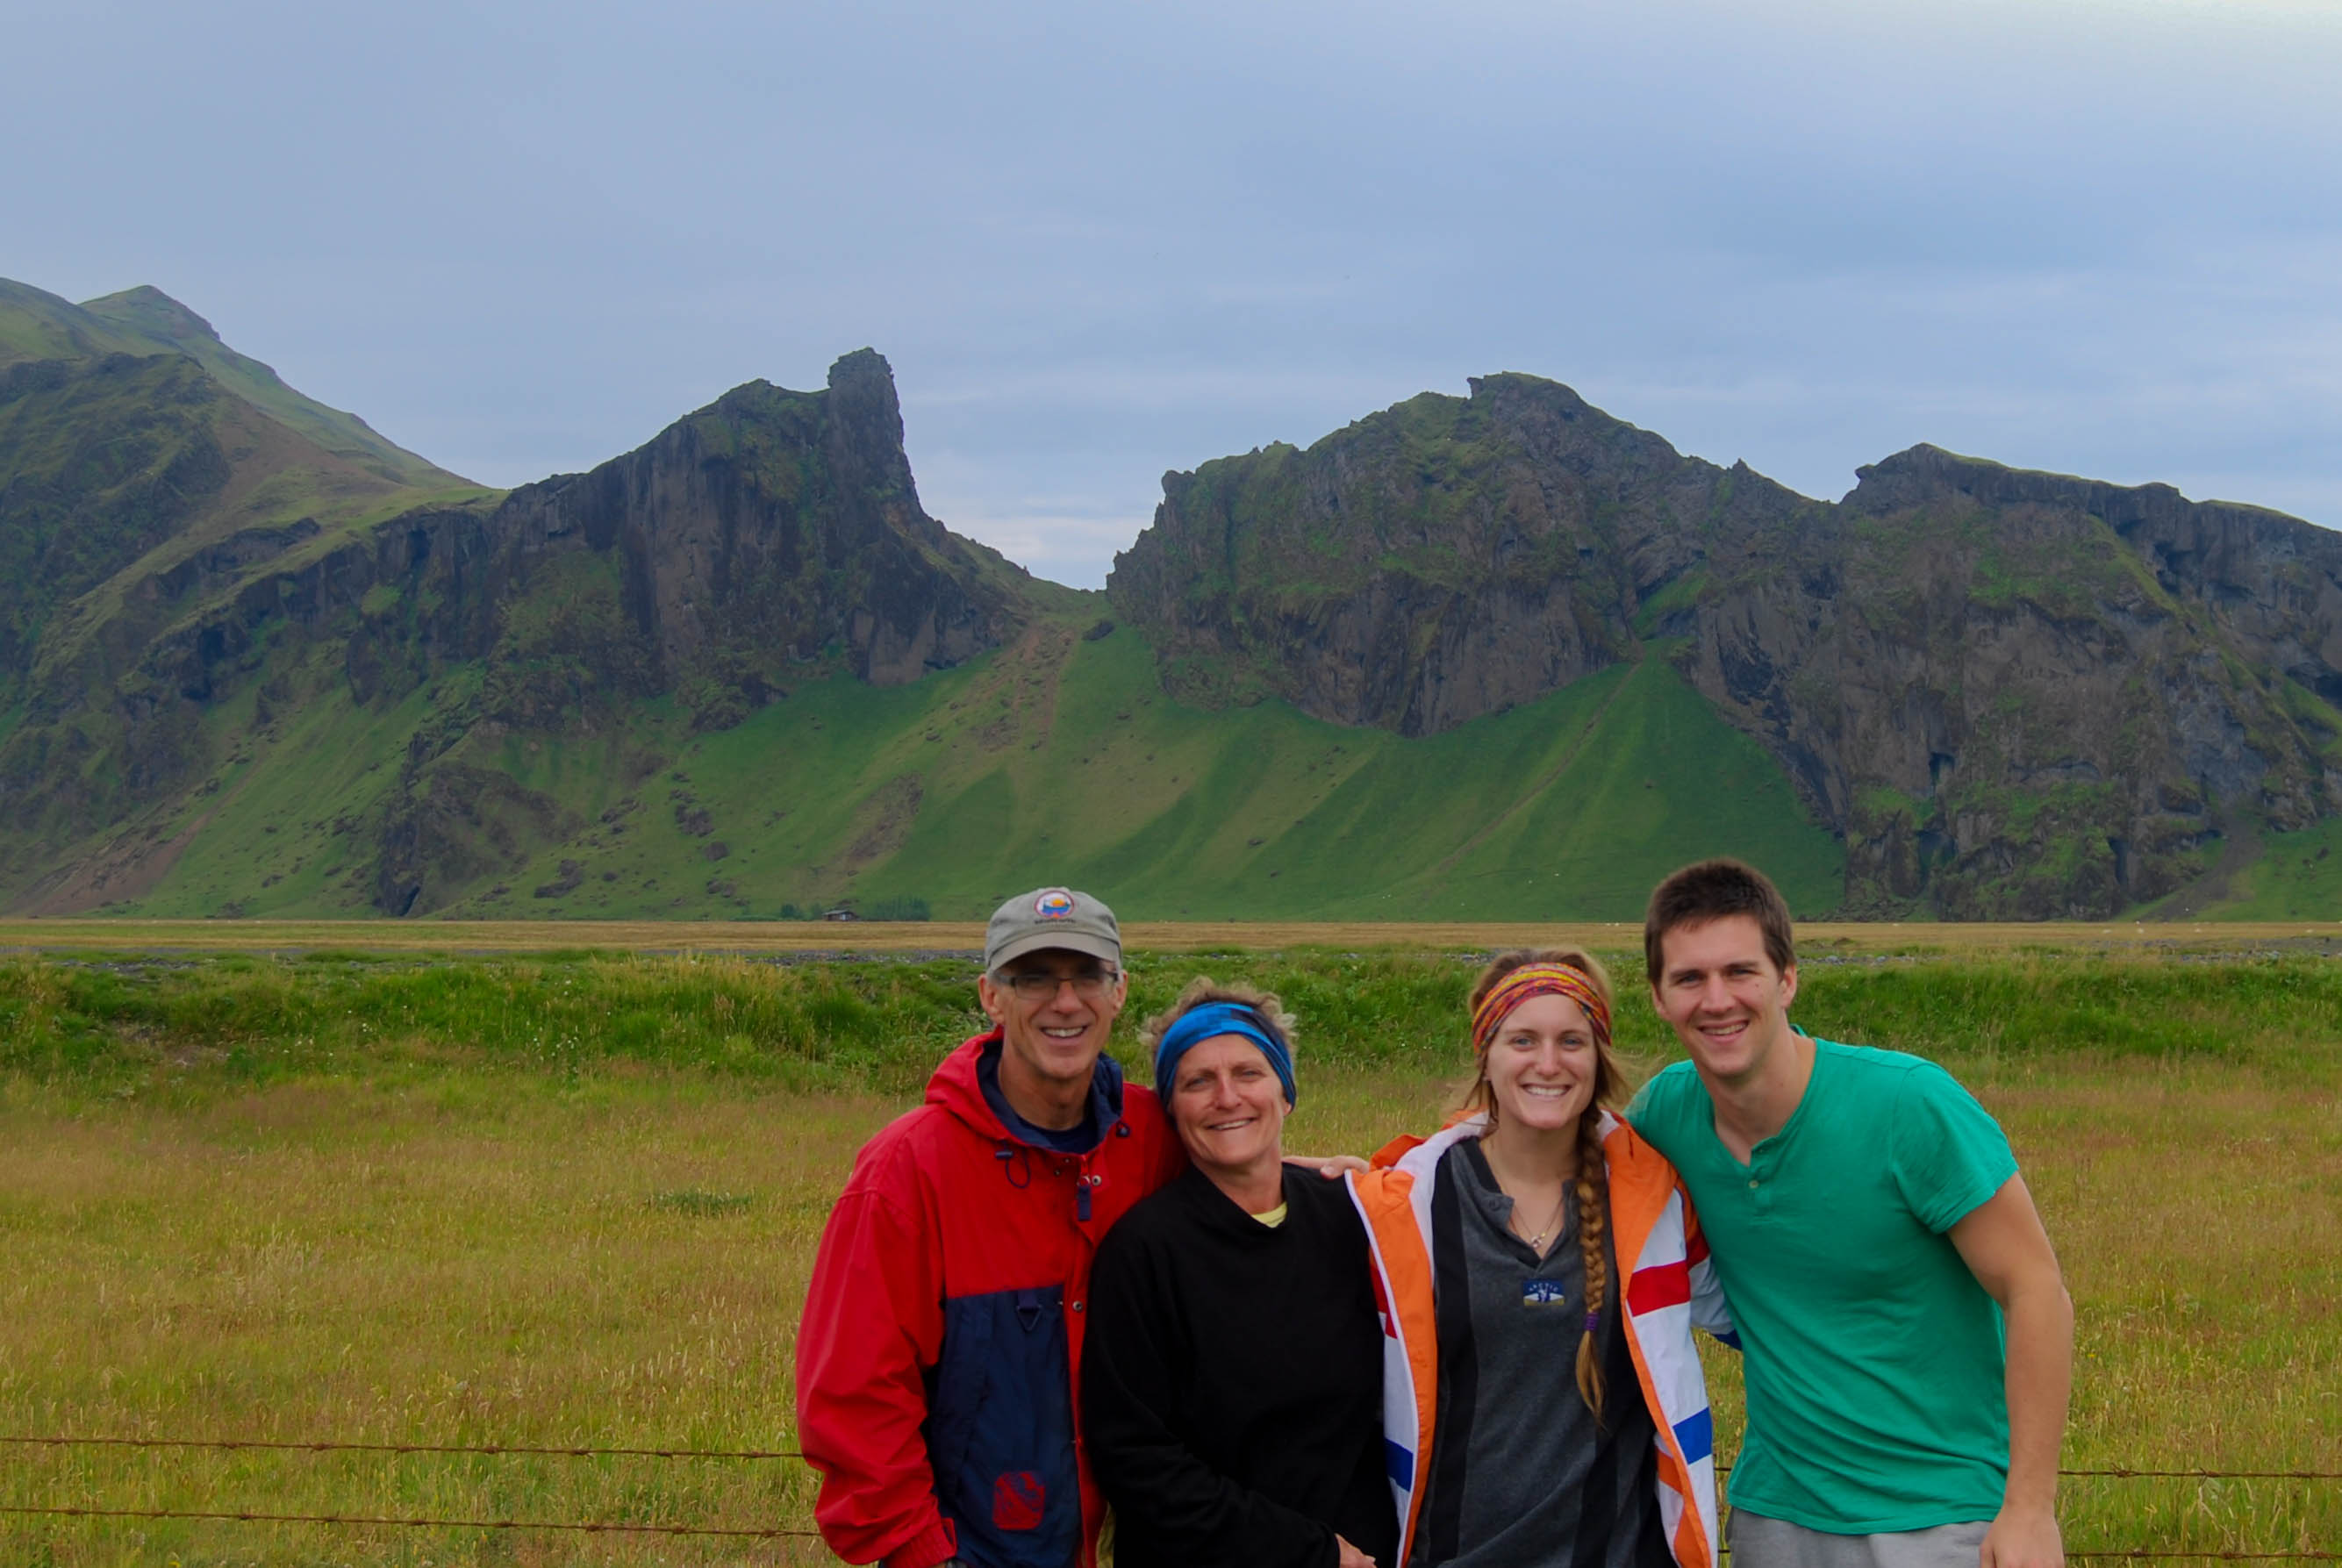 The Family Near the Icelandic Mountains